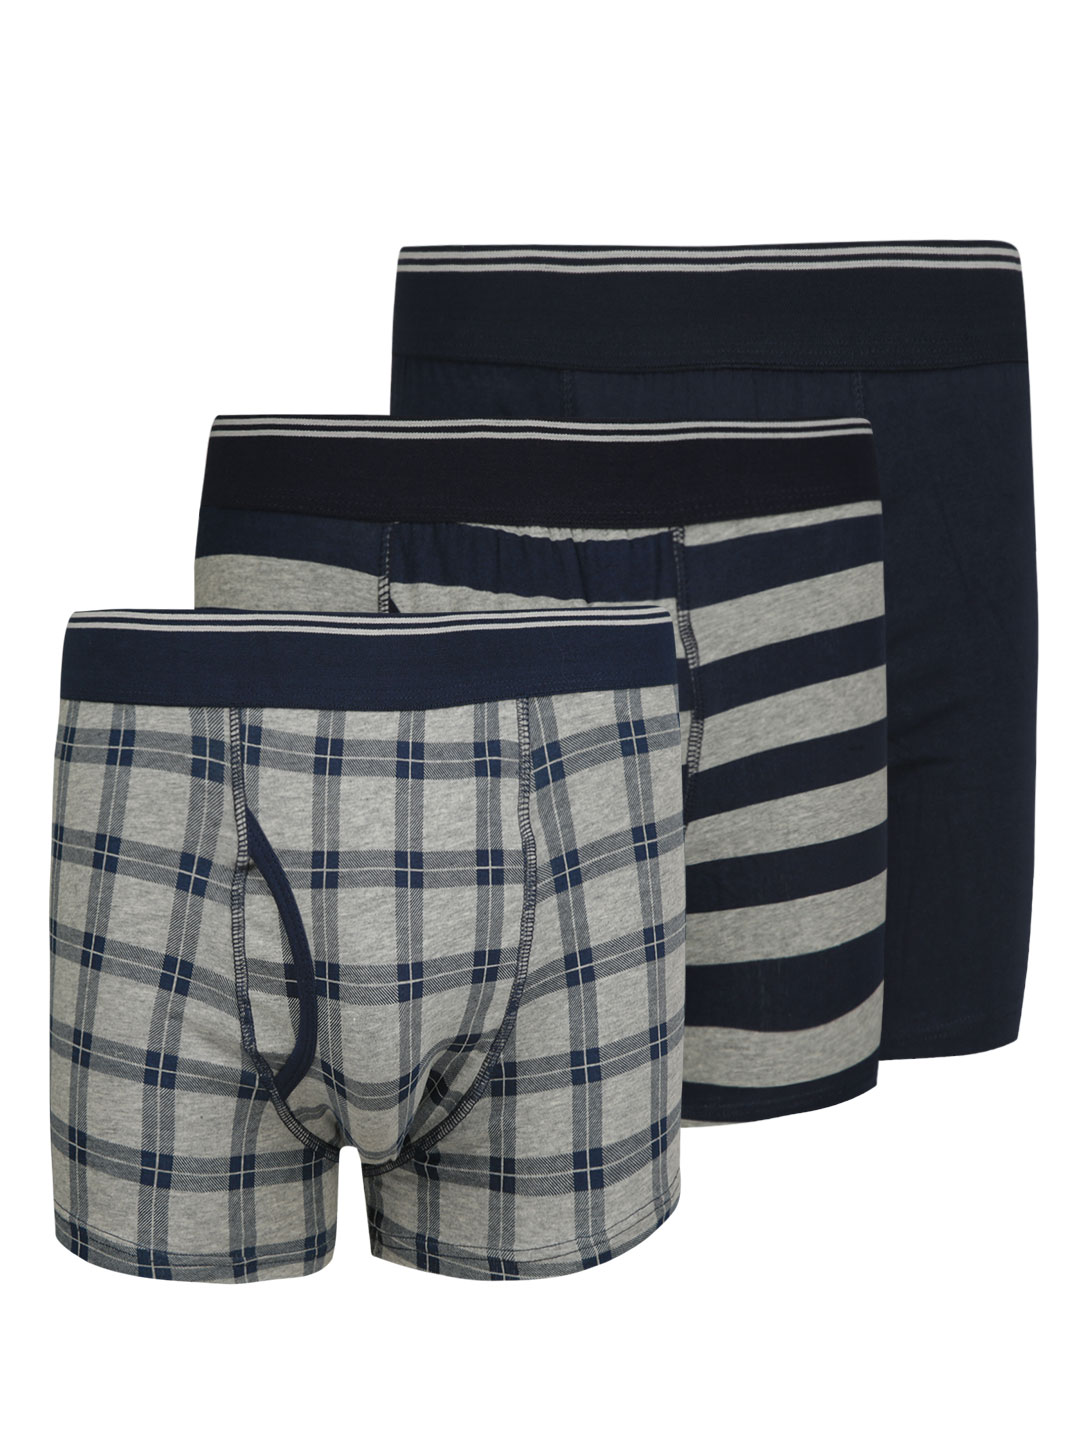 New Look Gingham Stripe Boxers  Pack of 3